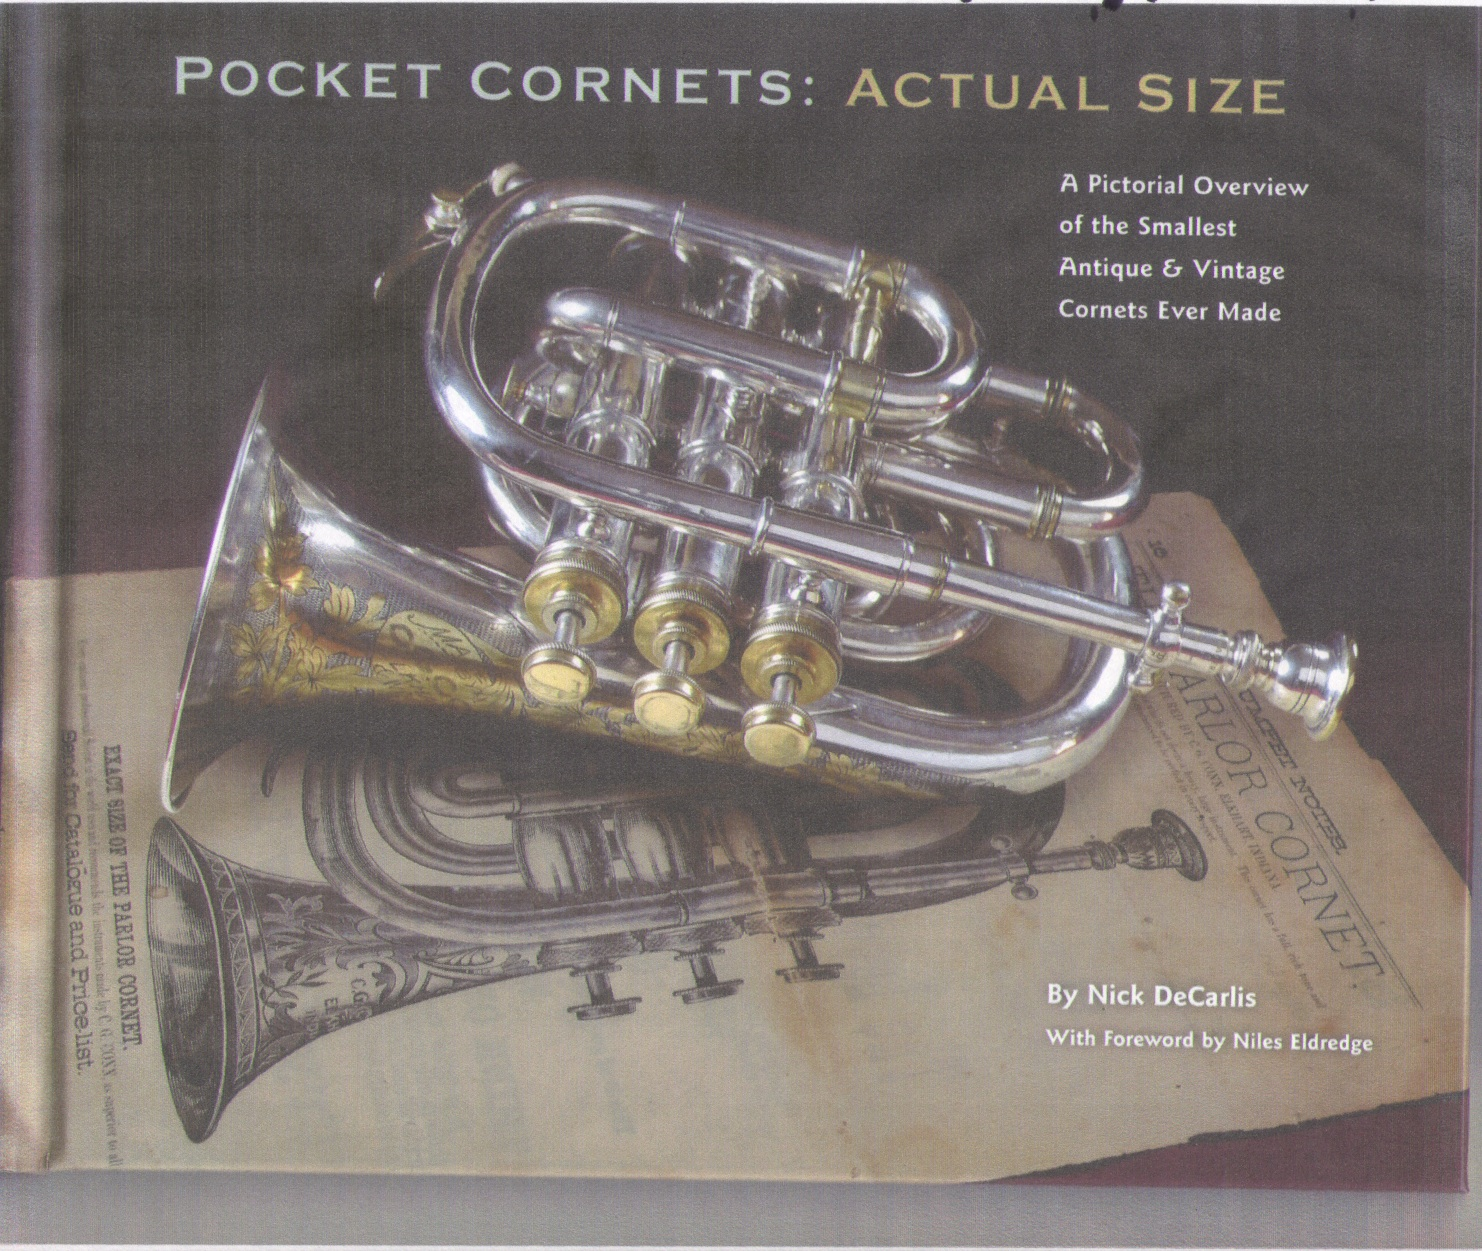 Pocket Cornets by Nick DeCarlis